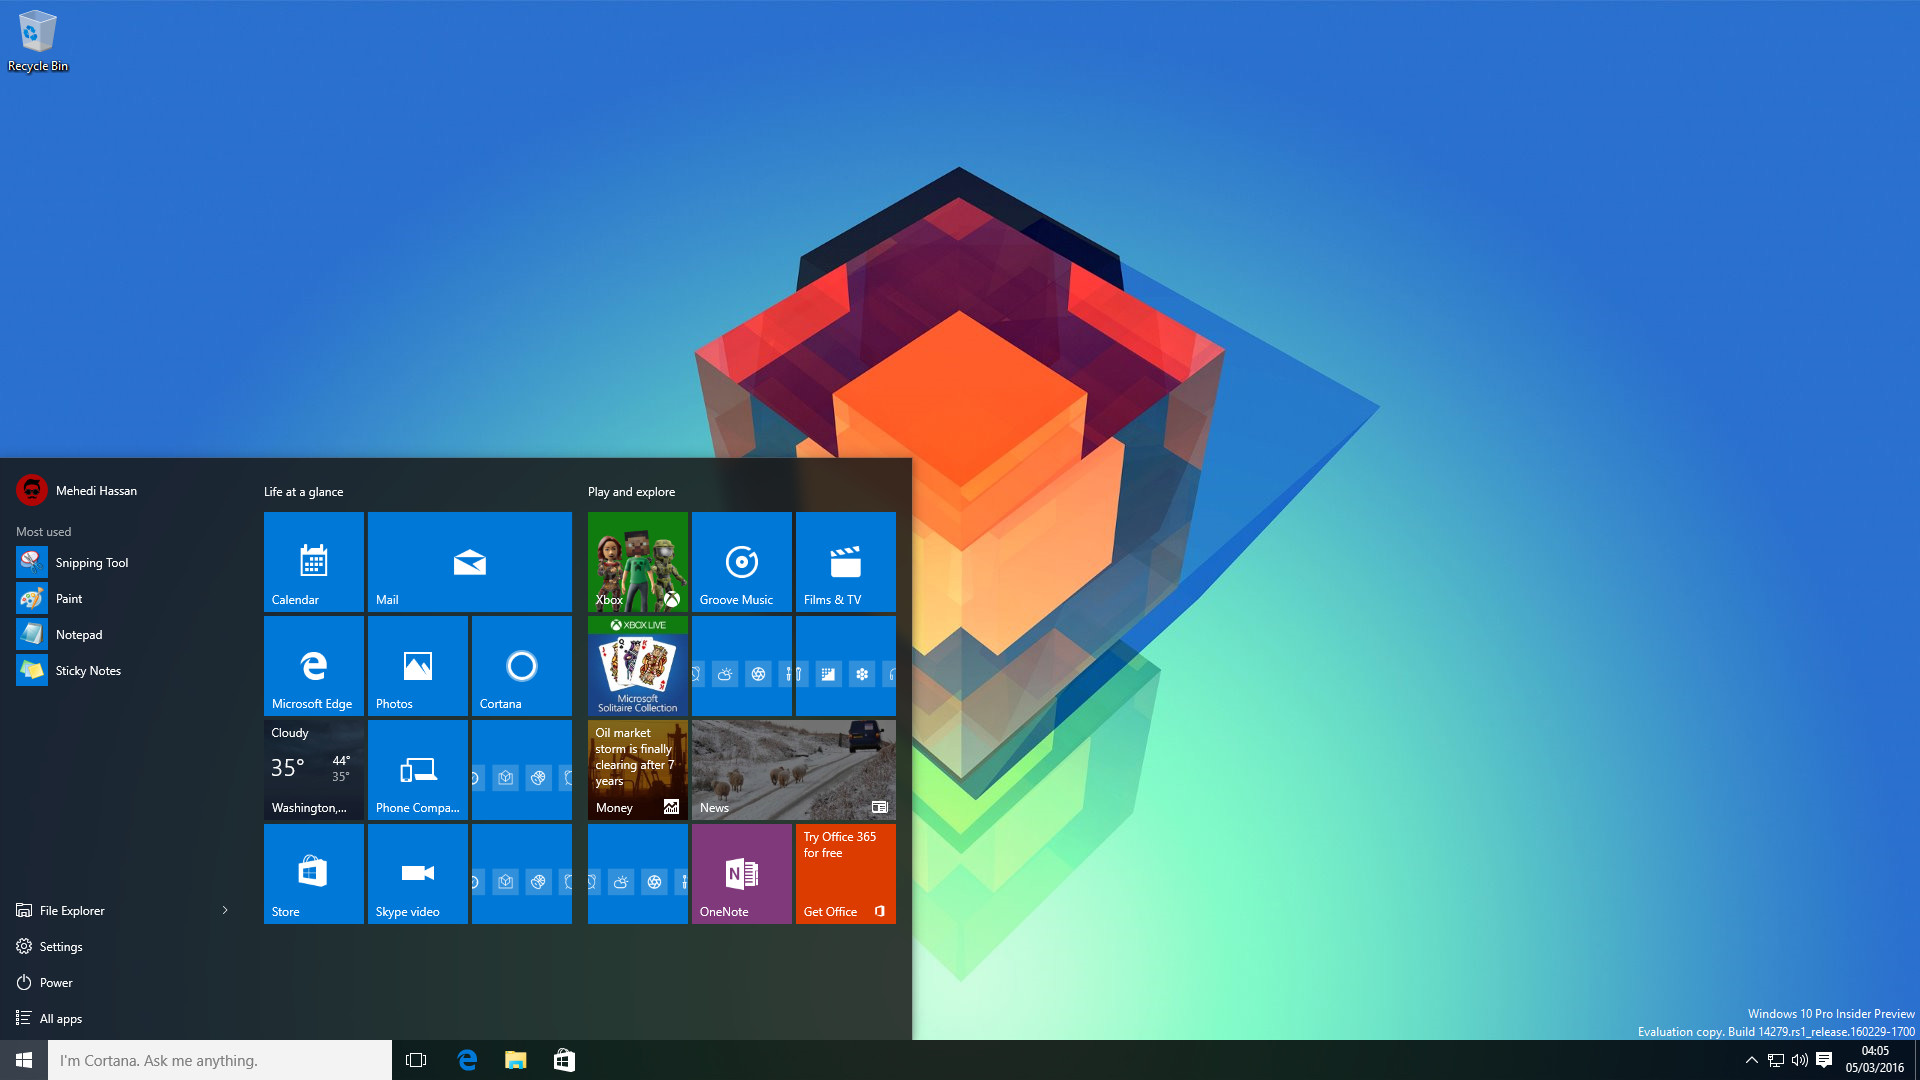 Last night, Microsoft released Windows 10 Build 14279 to Insiders in the  Fast Ring. Ahead of Build 2016, the folks over at Redmond are working hard  to add …